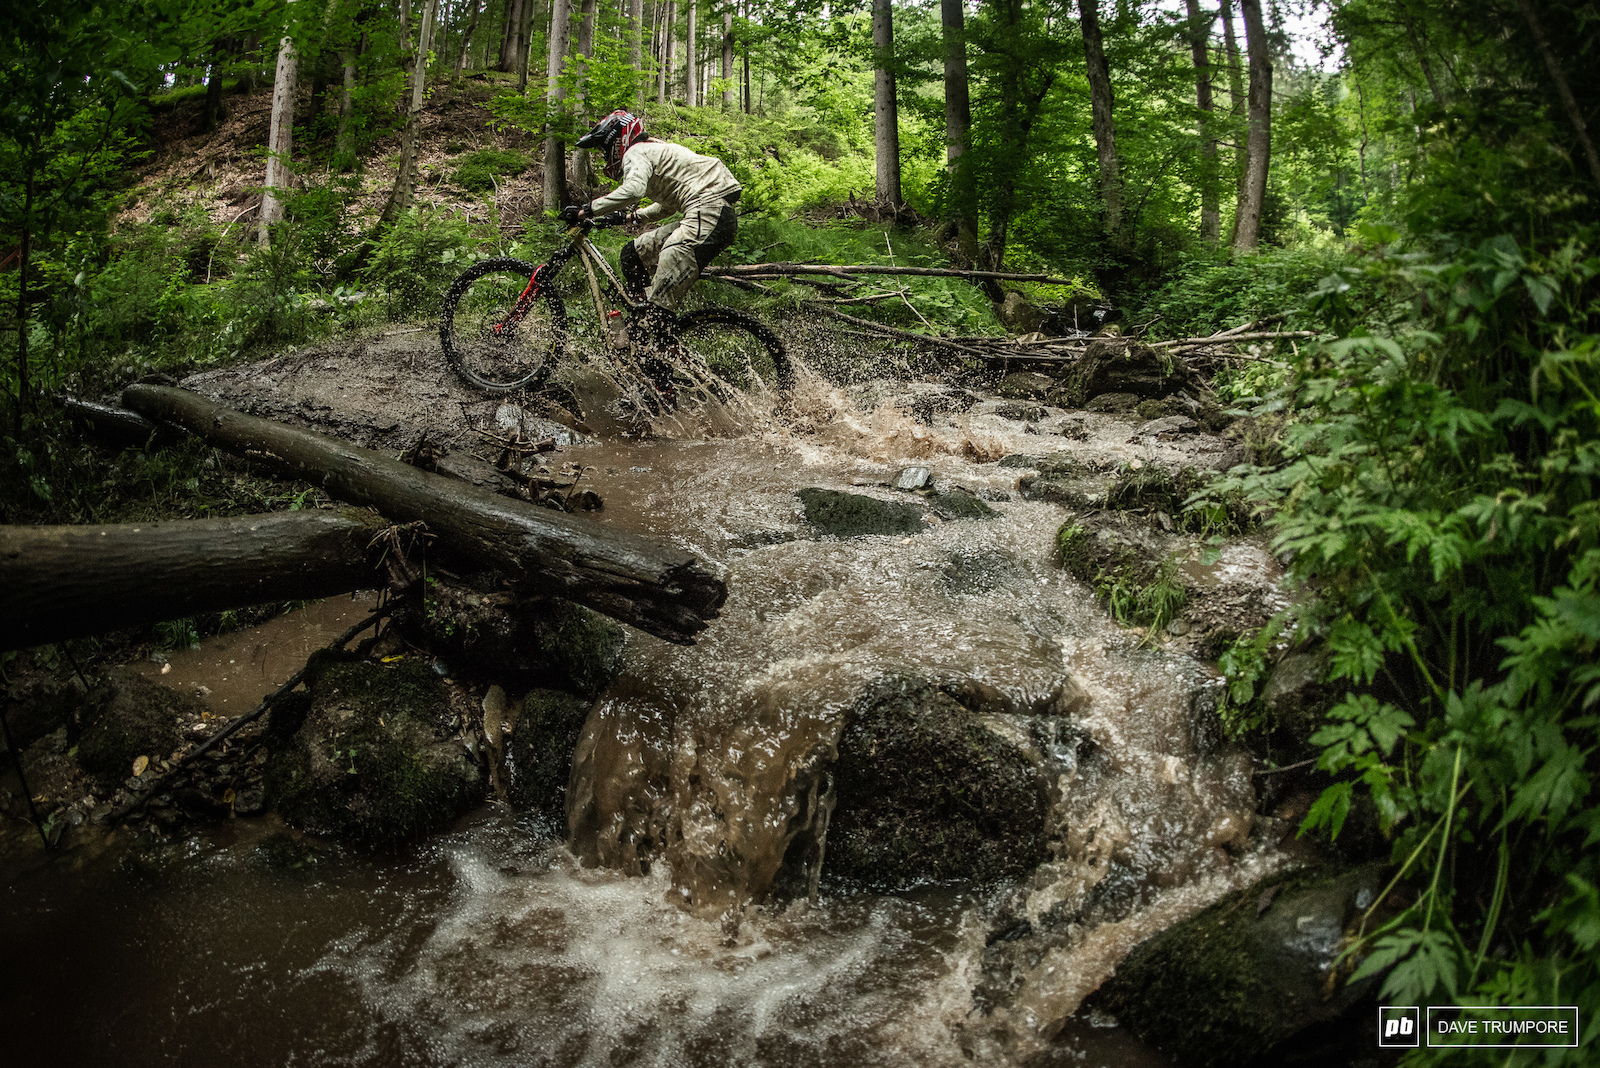 Making her own rapids through the river en route to three stage wins on the day for Cecile Ravanel.